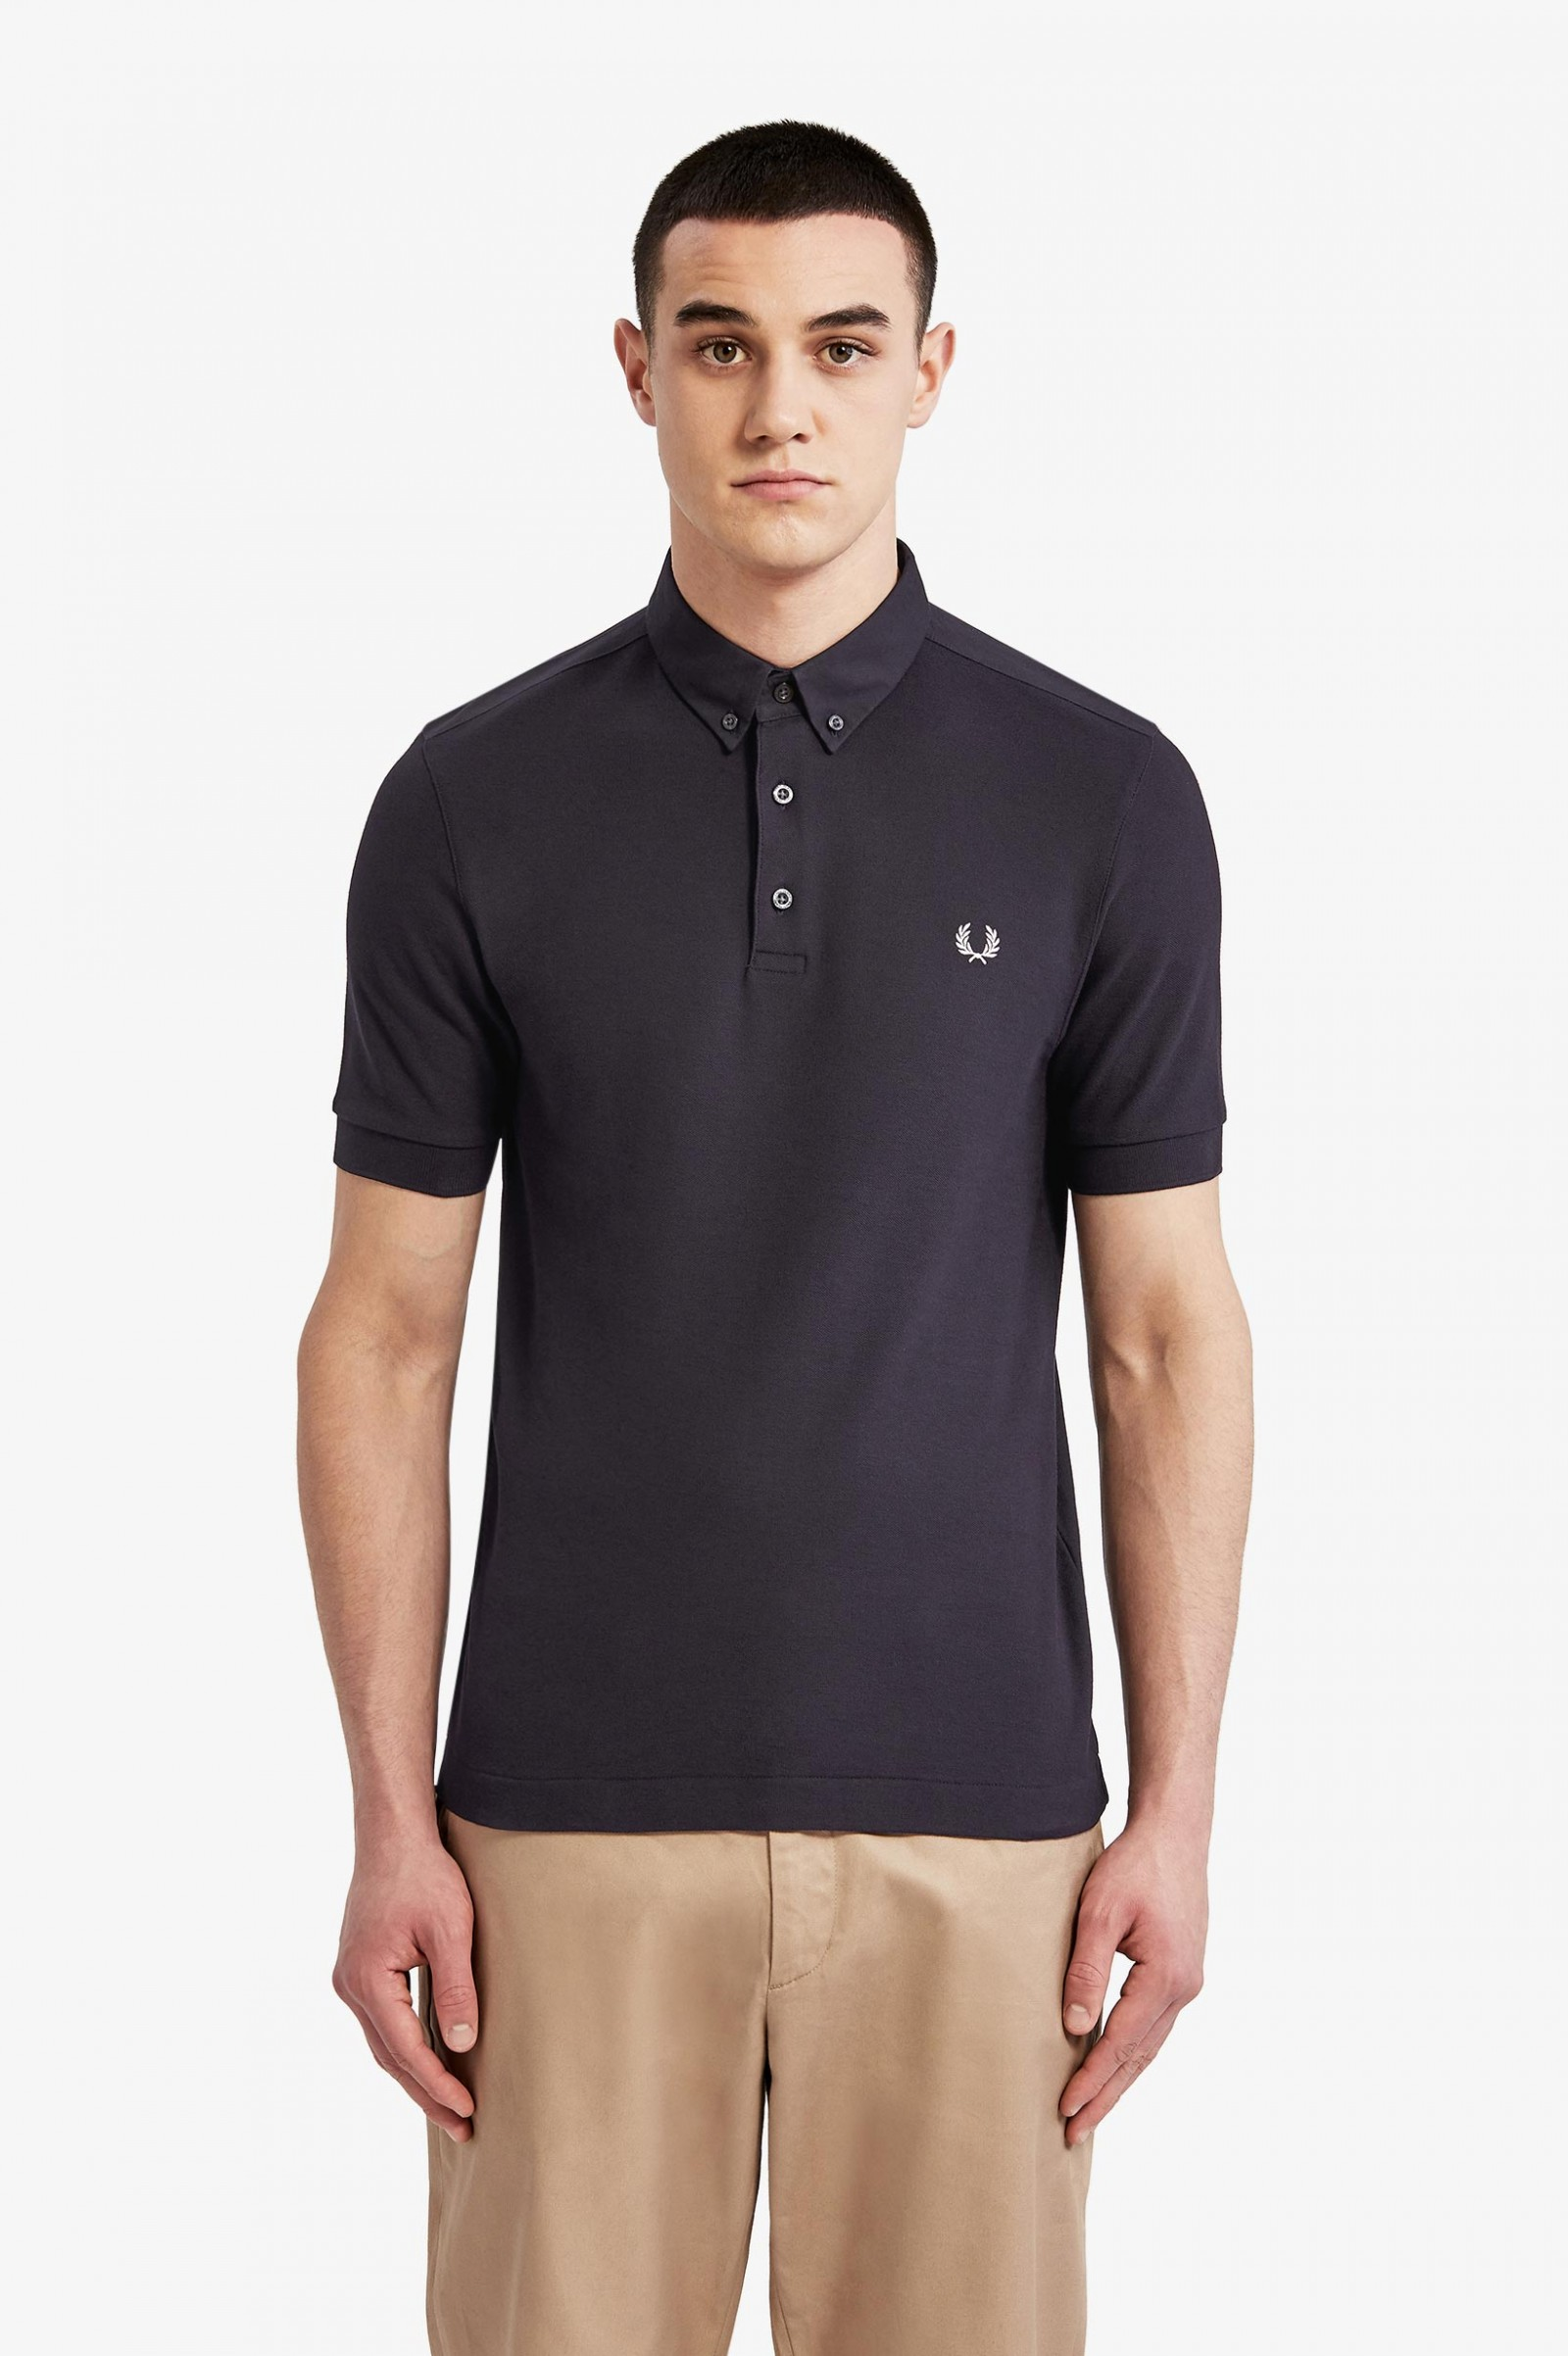 677c94f0 Oxford Trim Polo Shirt - Navy | Men's Polo Shirts | Fred Perry US